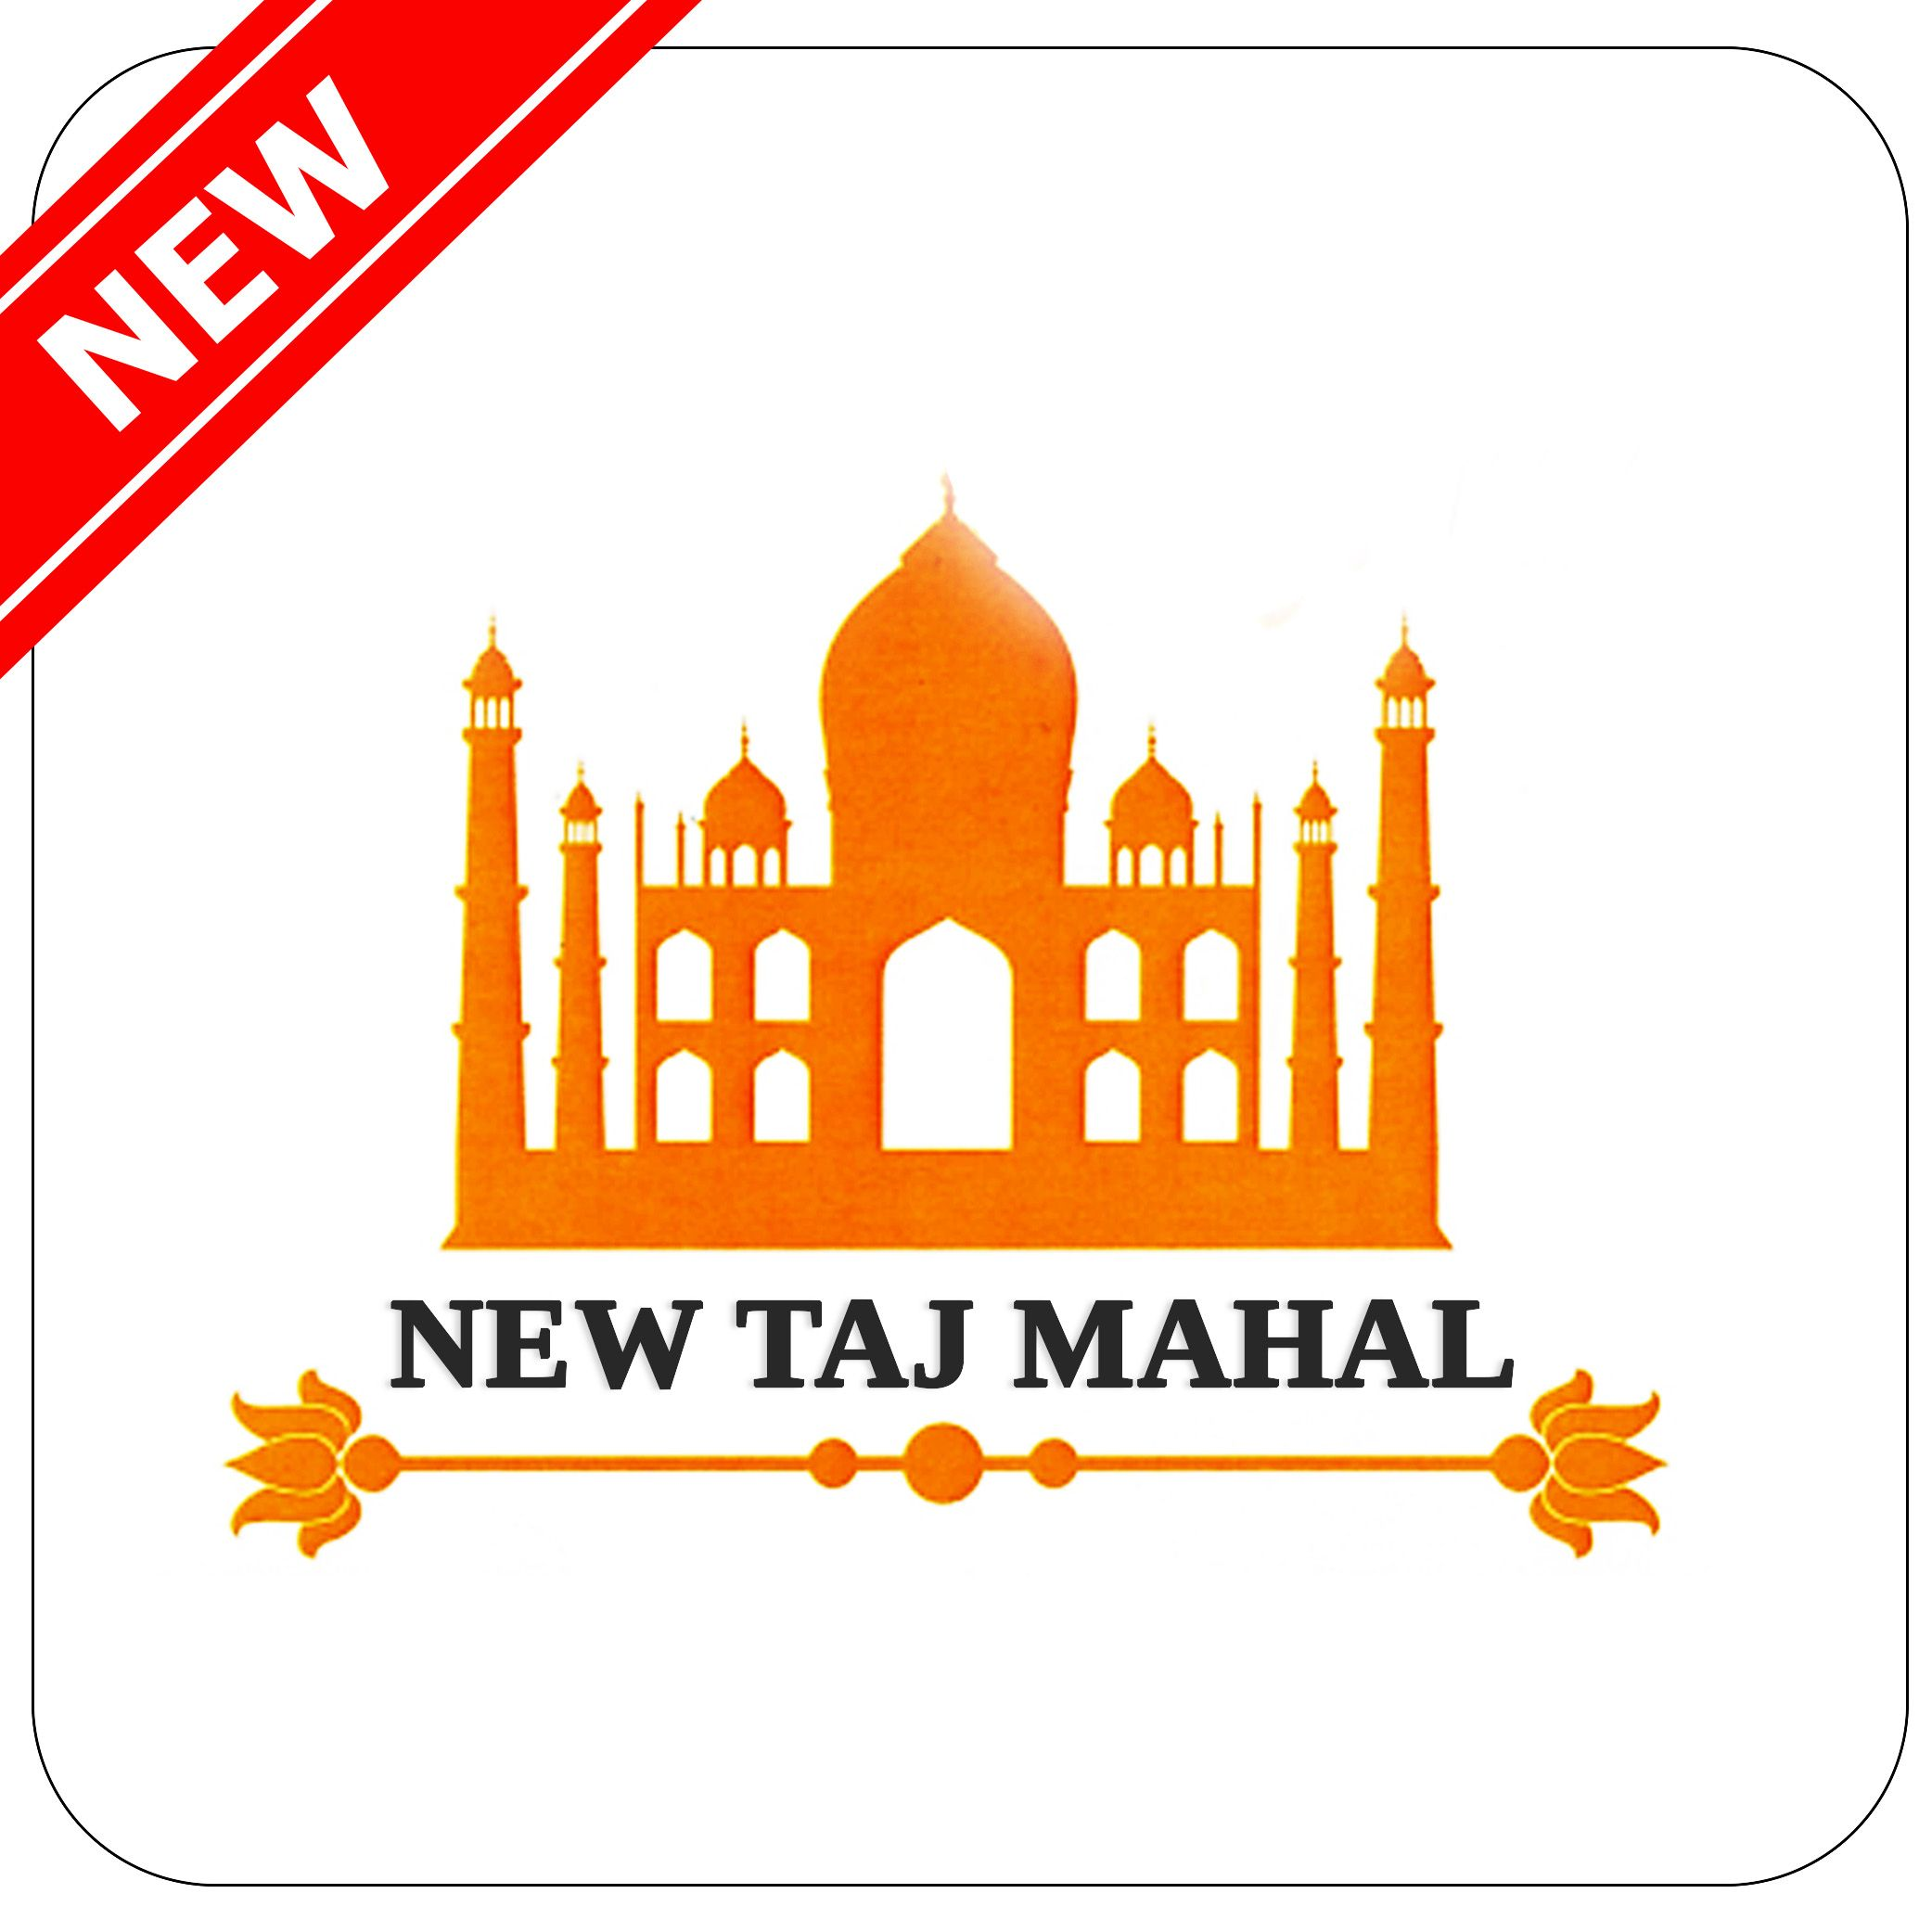 New Taj Mahal Restaurant